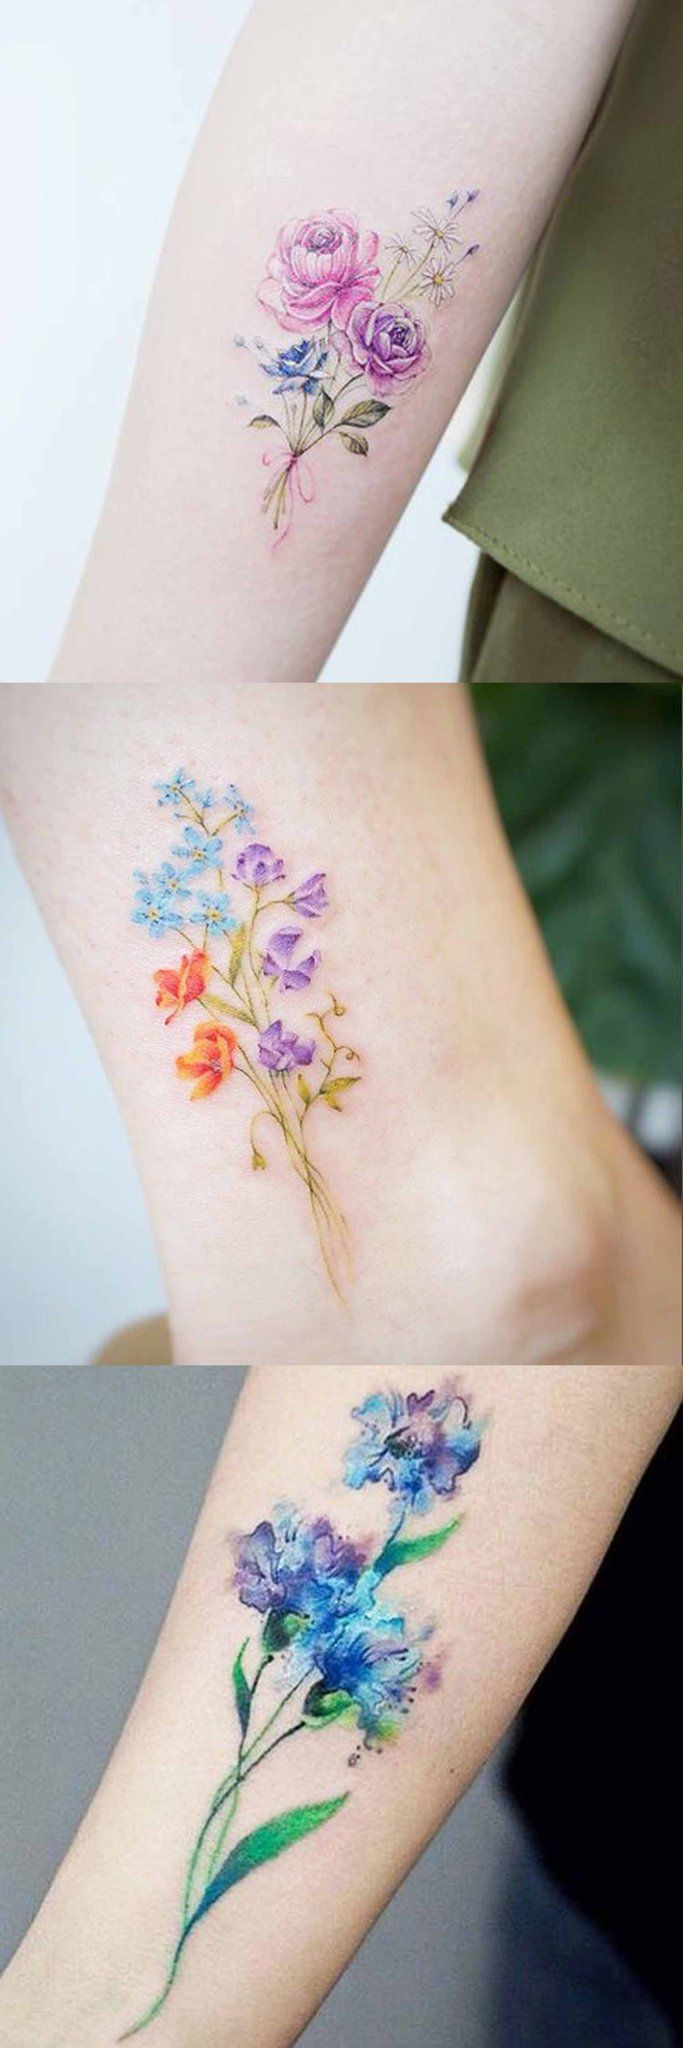 30 delicate flower tattoo ideas flower tattoos tatt and for Delicate wrist tattoo designs